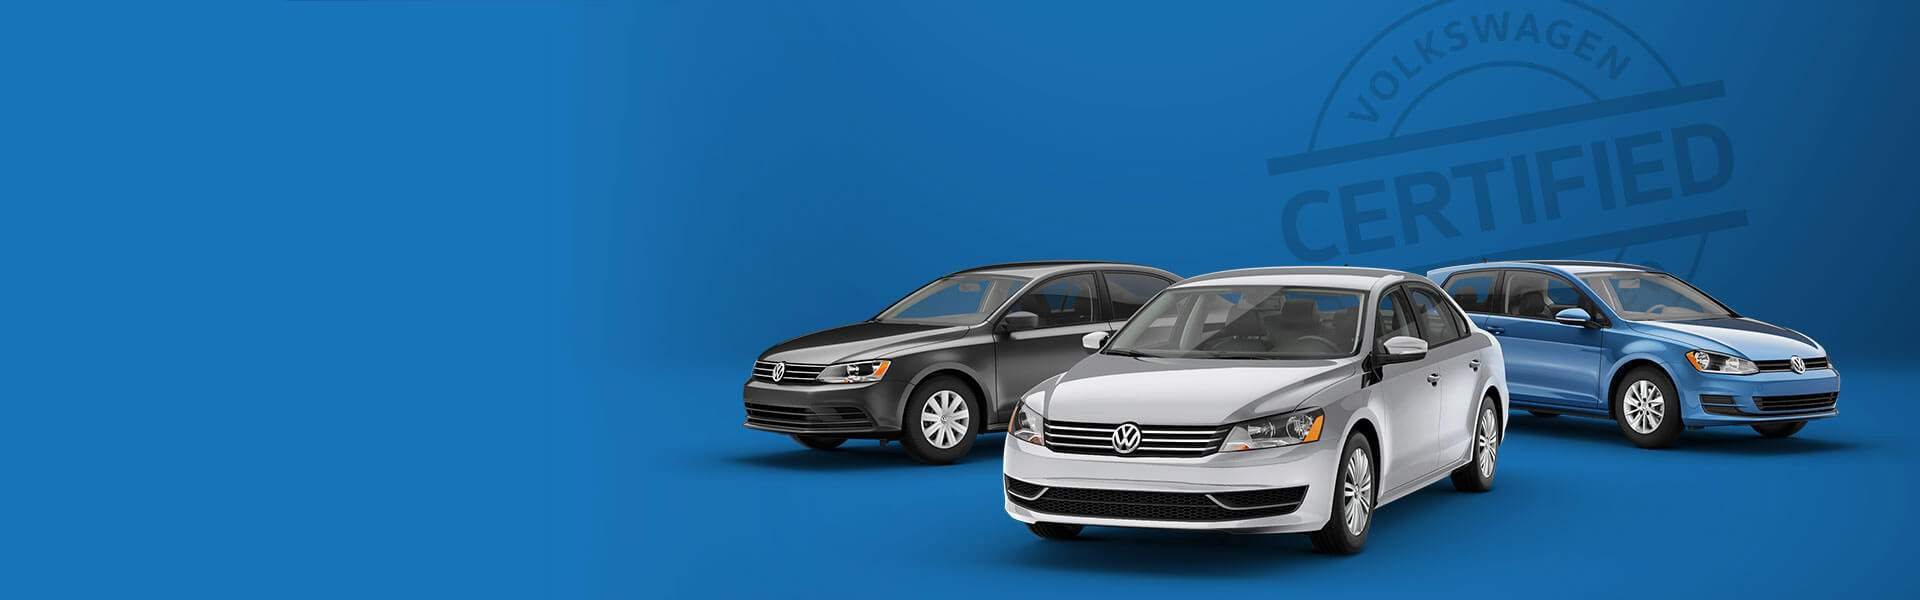 Volkswagen Certified Pre-Owned in Topeka, KS